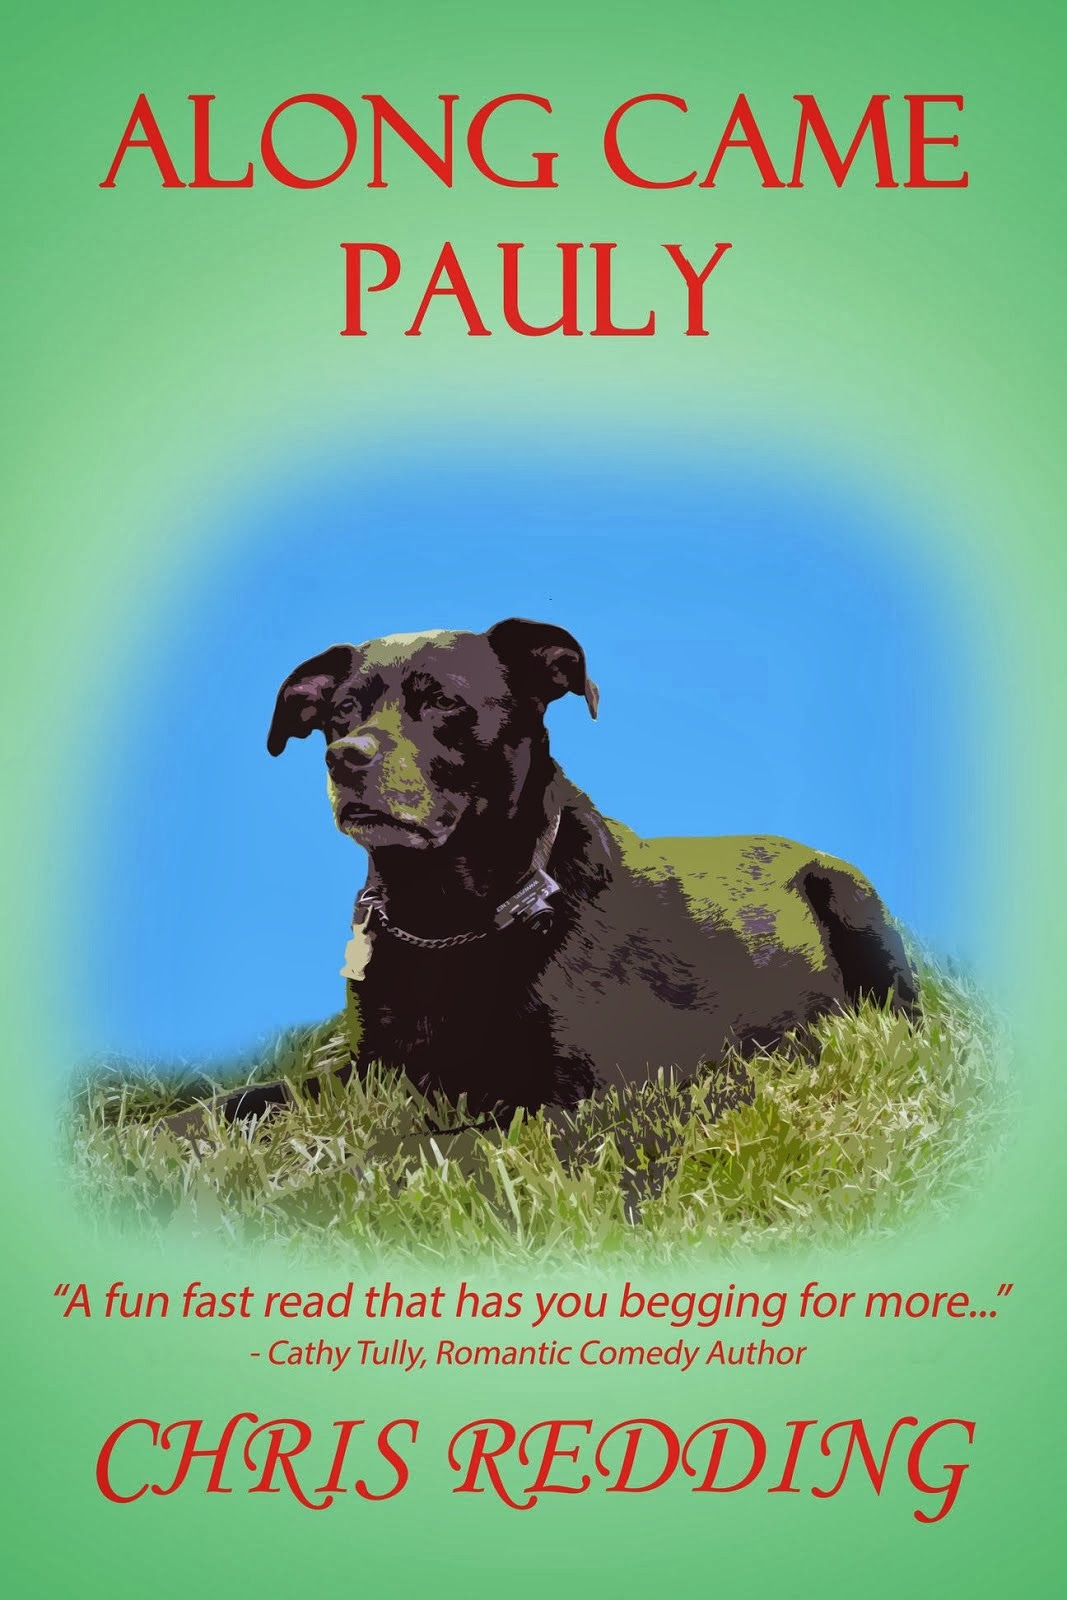 Humorous Contemporary Romance with a Dog